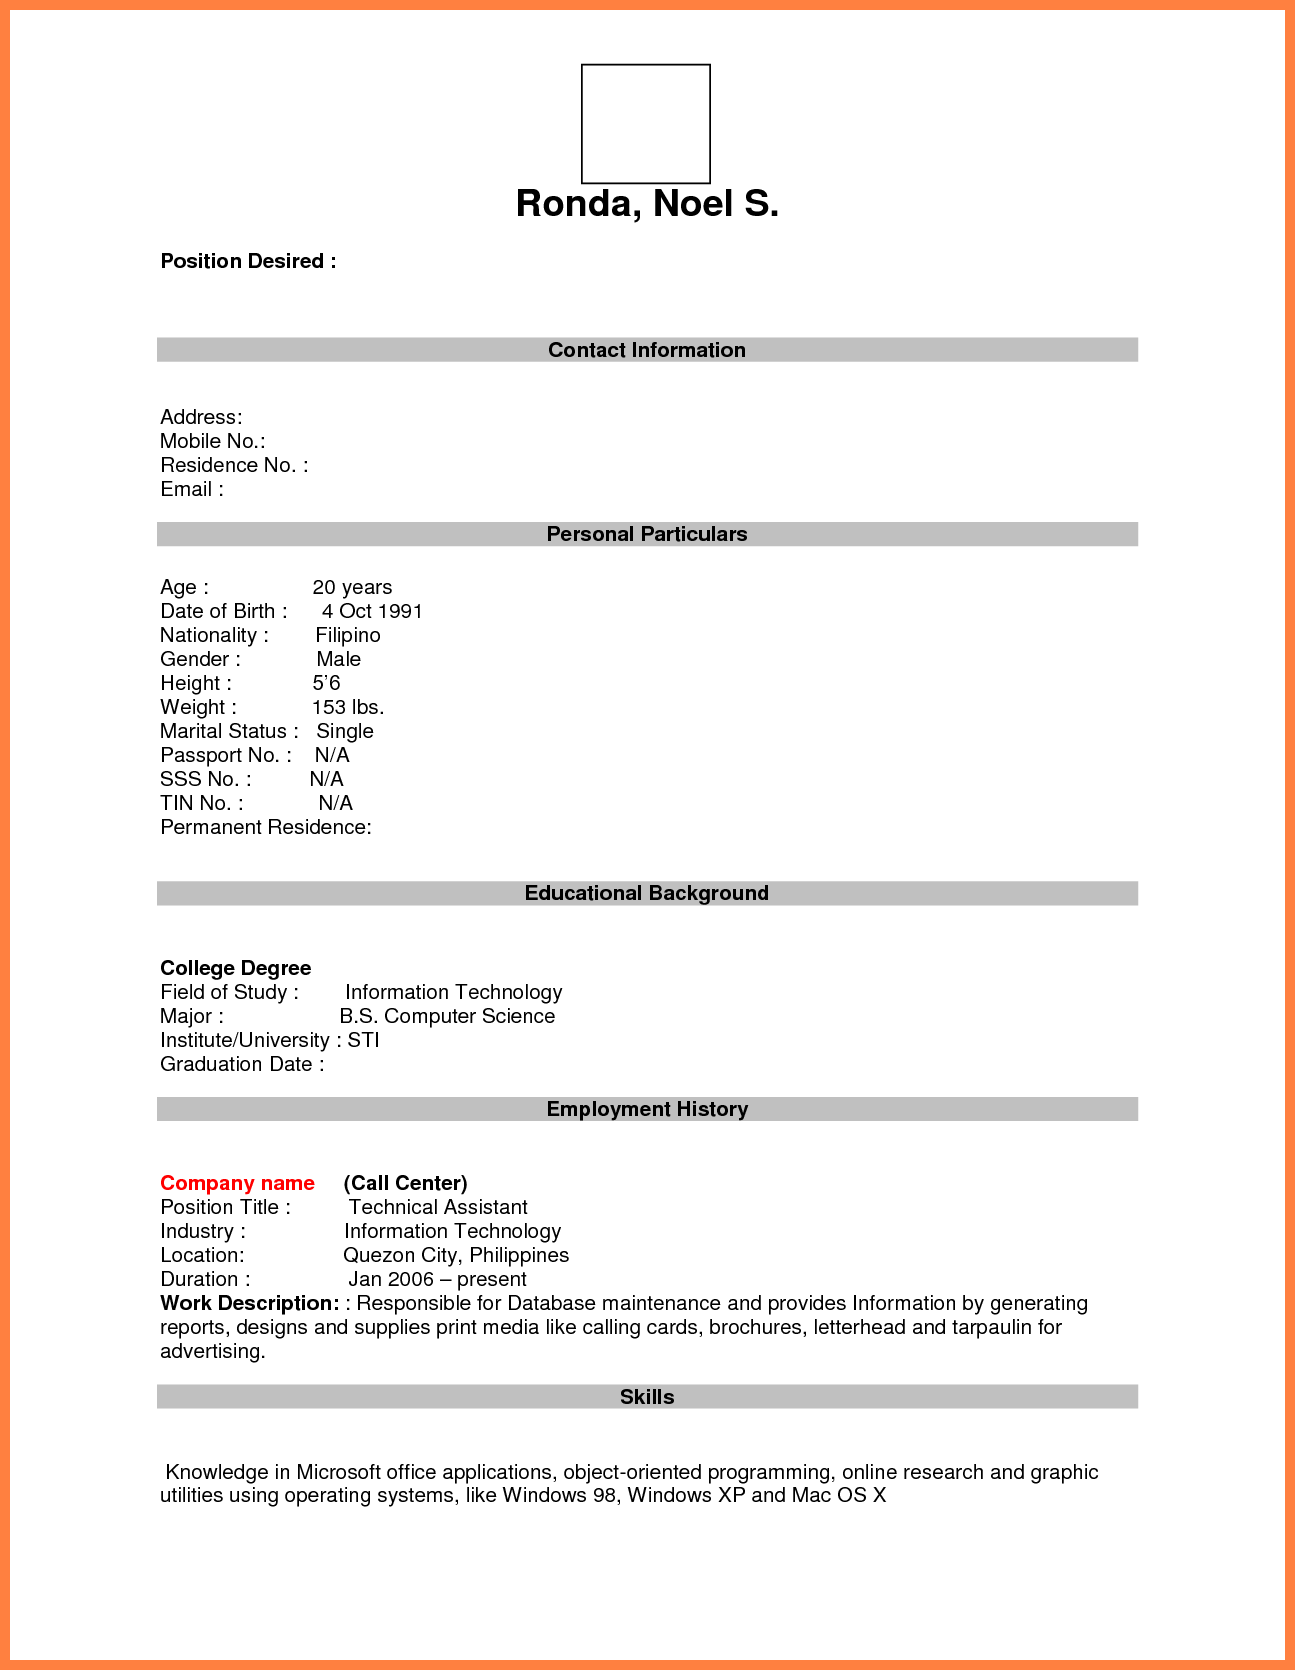 Blank Resume Template Enchanting Format For Job Application Pdf Basic Appication Letter Blank Resume